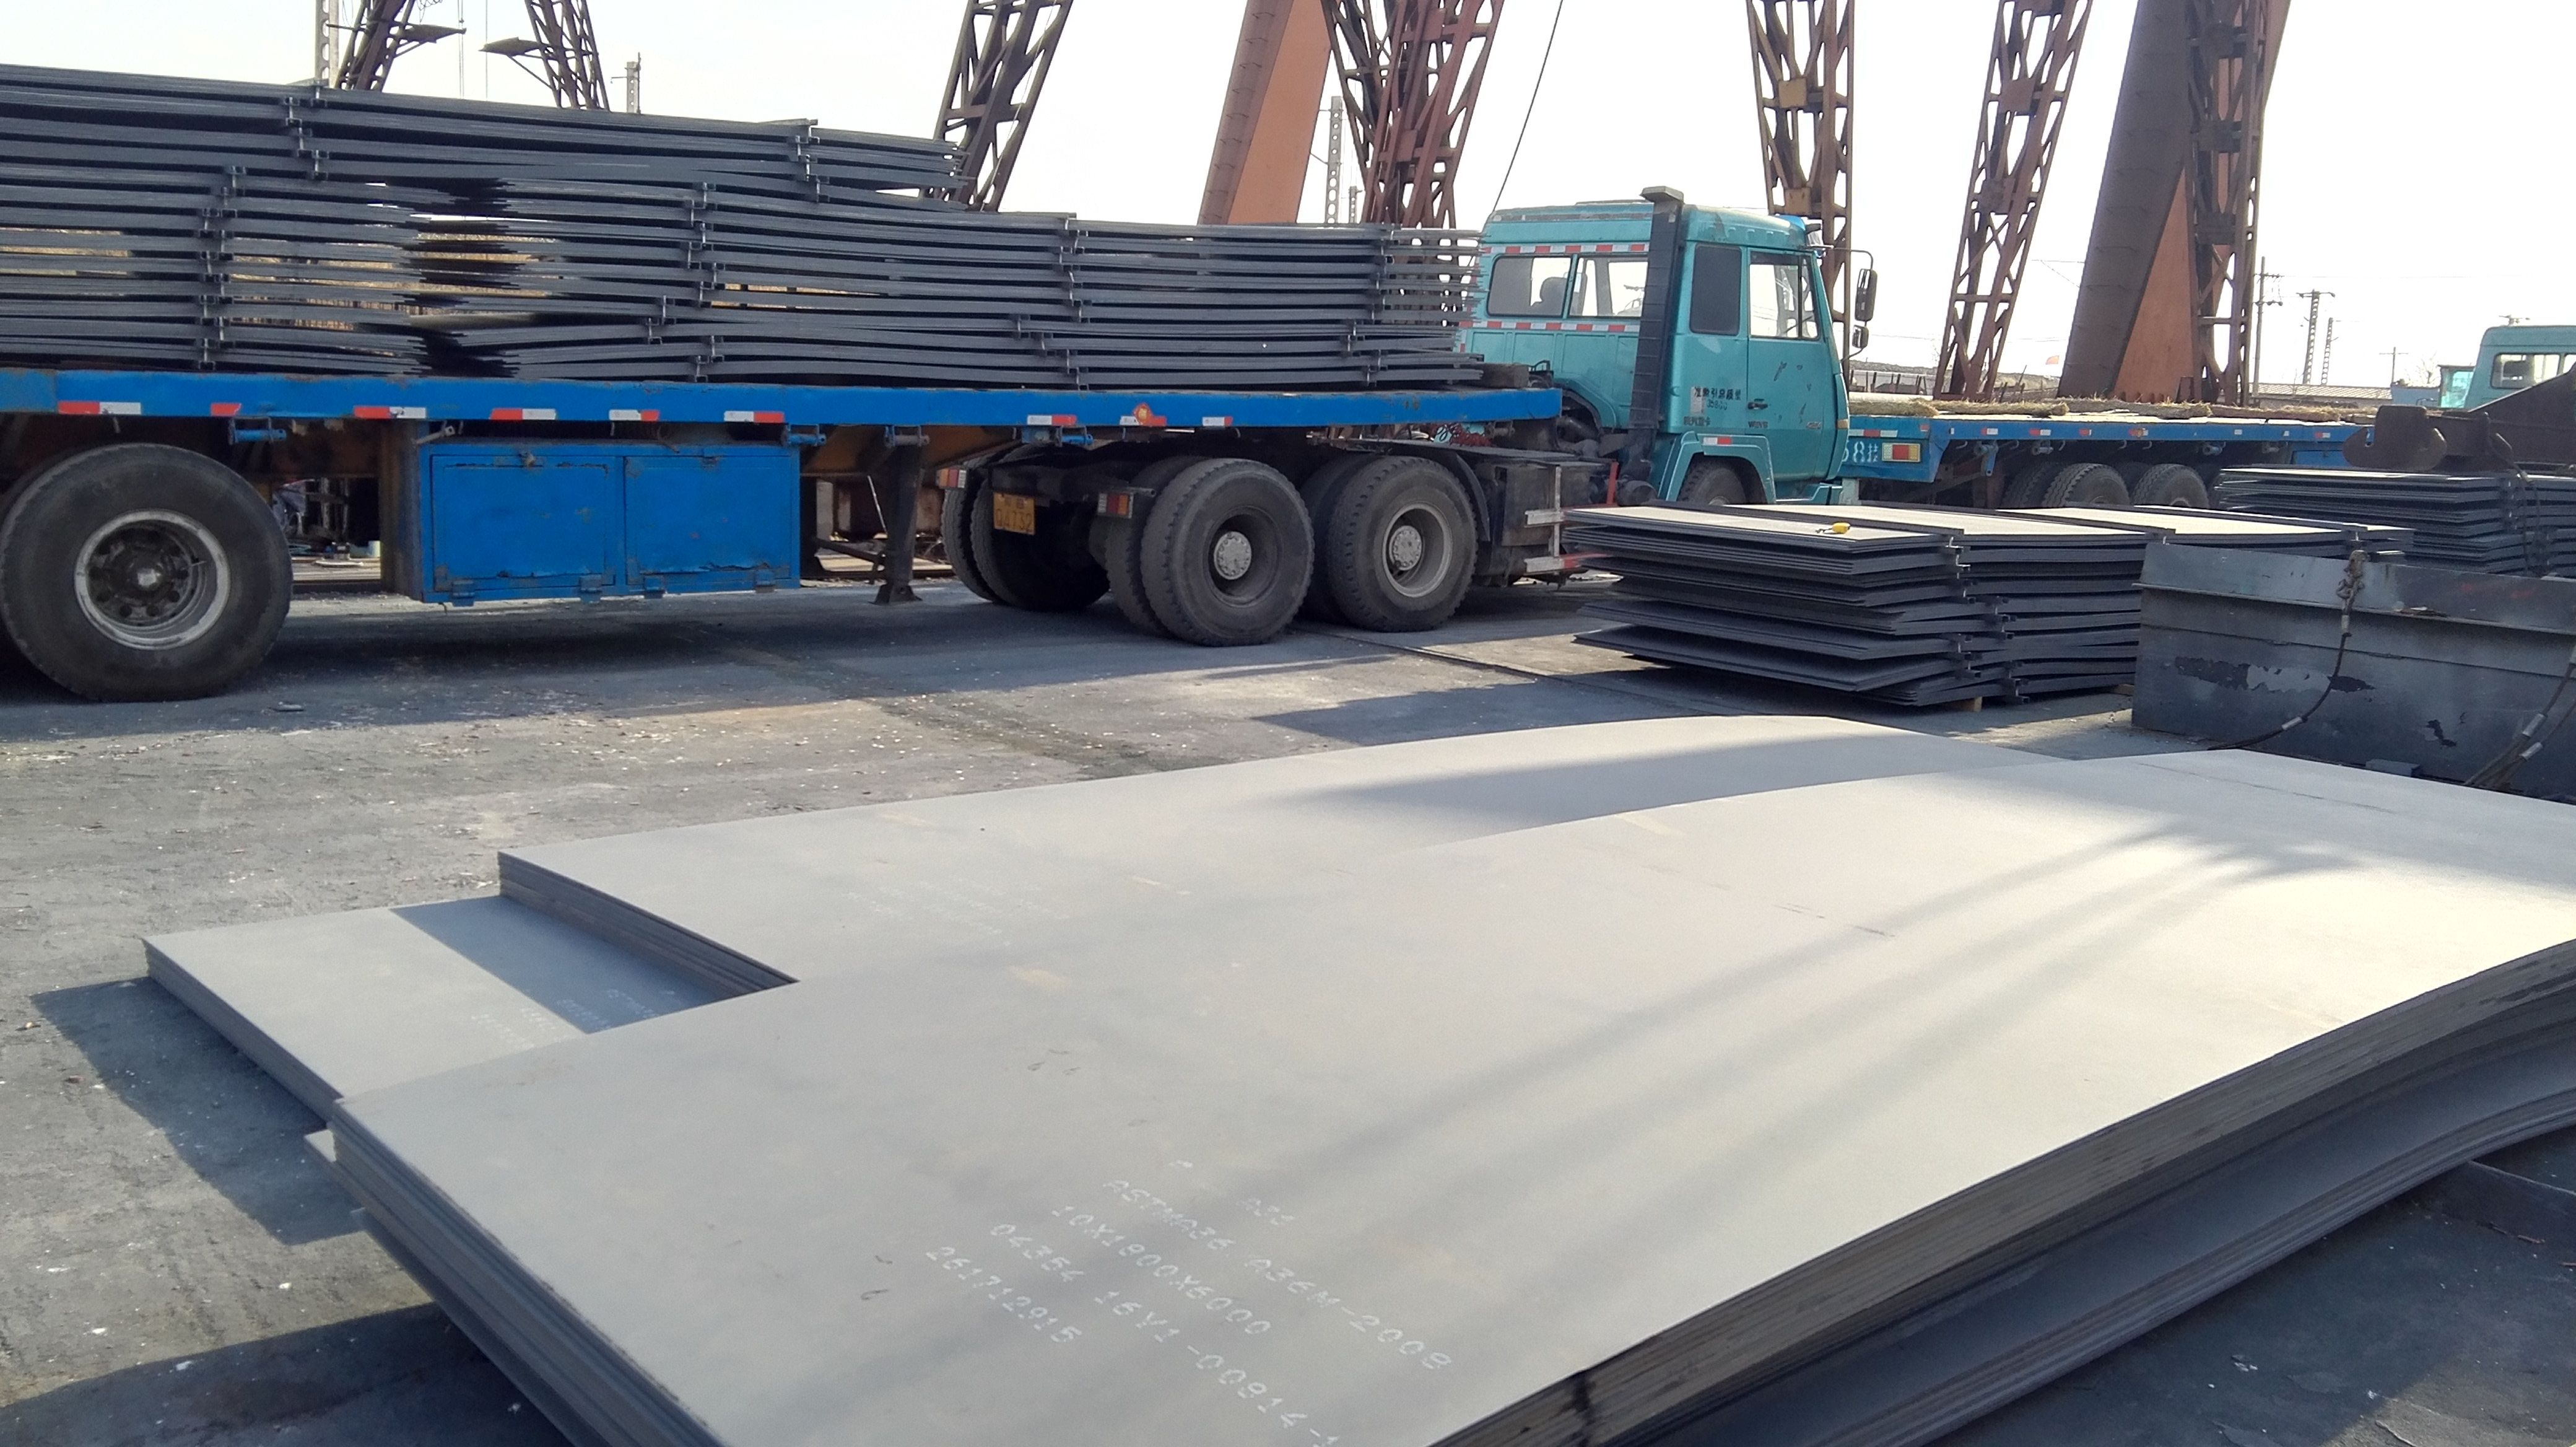 Lr Eh36 Hot Rolled Steel Plate May Leave Scratches On The Surface During Production Which May Be Caused By Mechanical Damage Steel Plate Sliding Tracks Steel